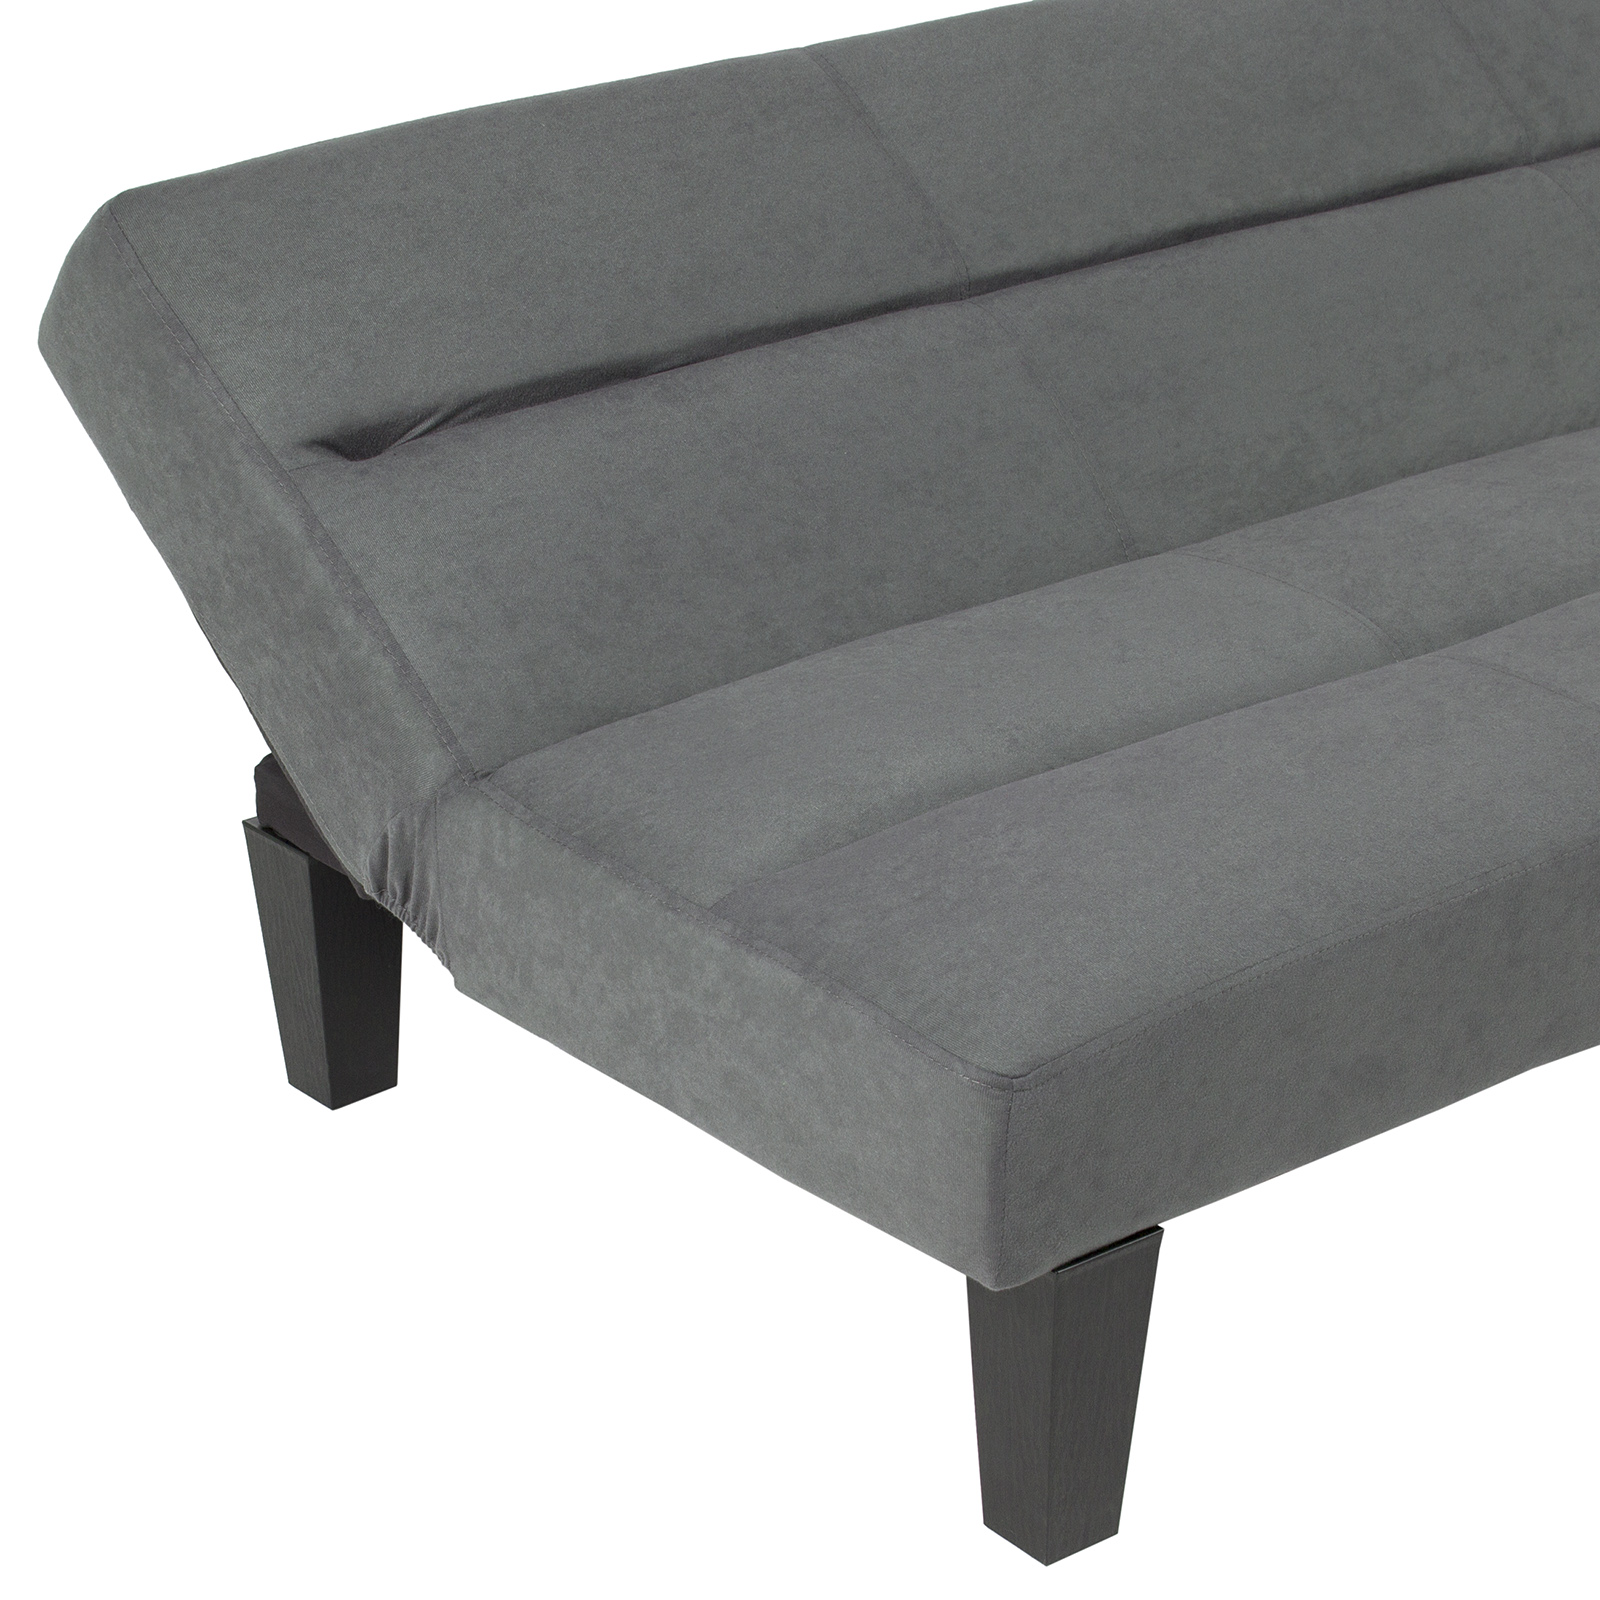 BCP-Microfiber-Folding-Futon-Sofa-Bed-w-6in-Thick-Padding